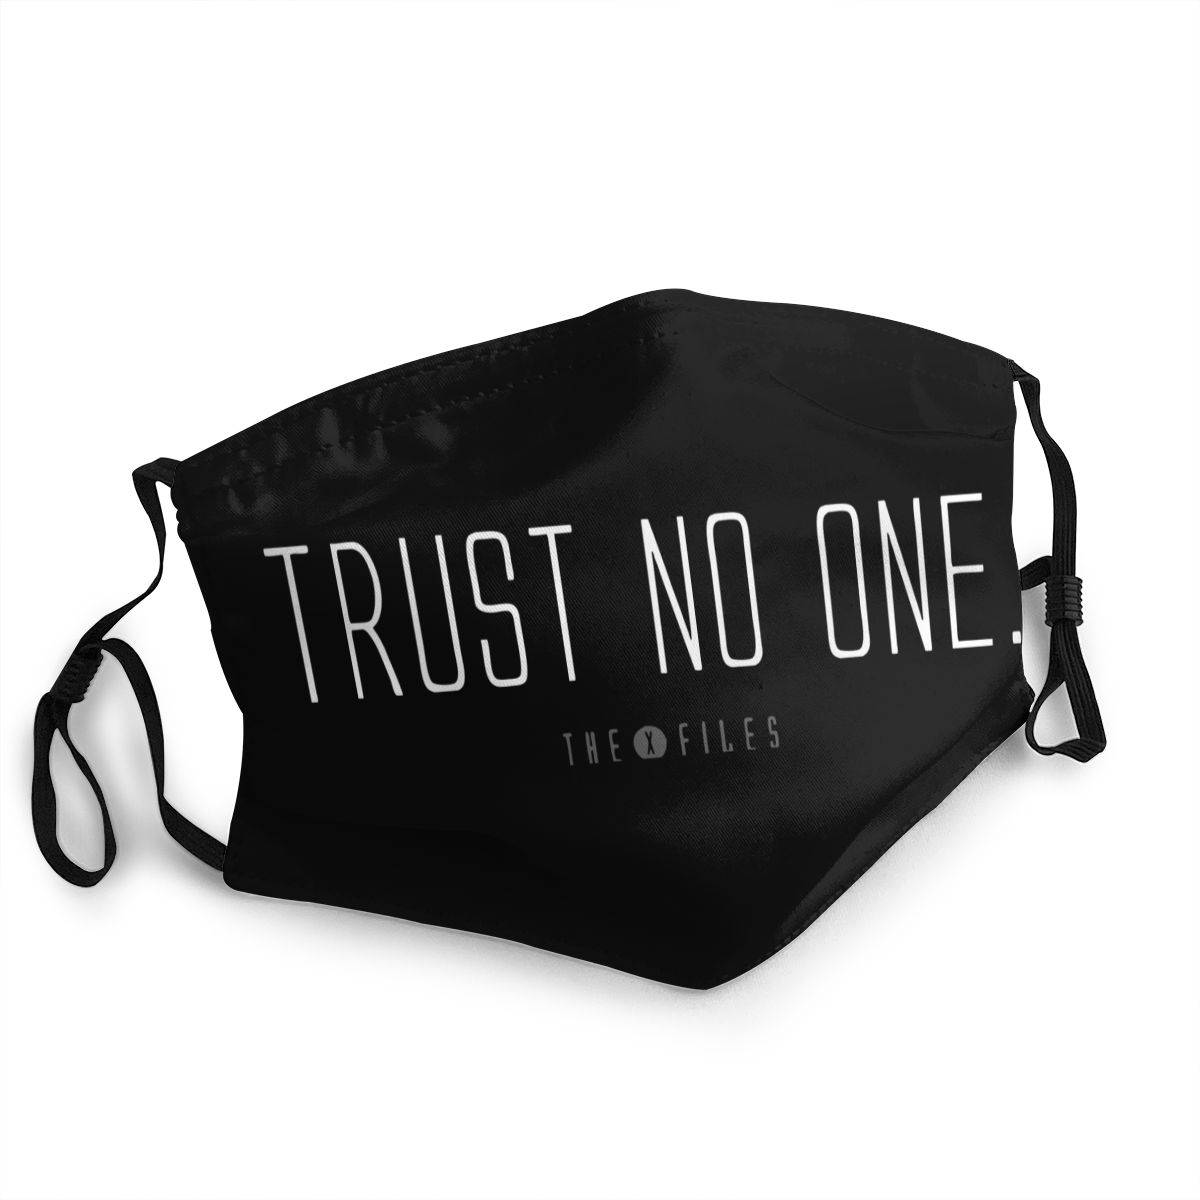 Trust No One X Files Adult Reusable Face Mask Anti Haze Dust Protection Cover Respirator